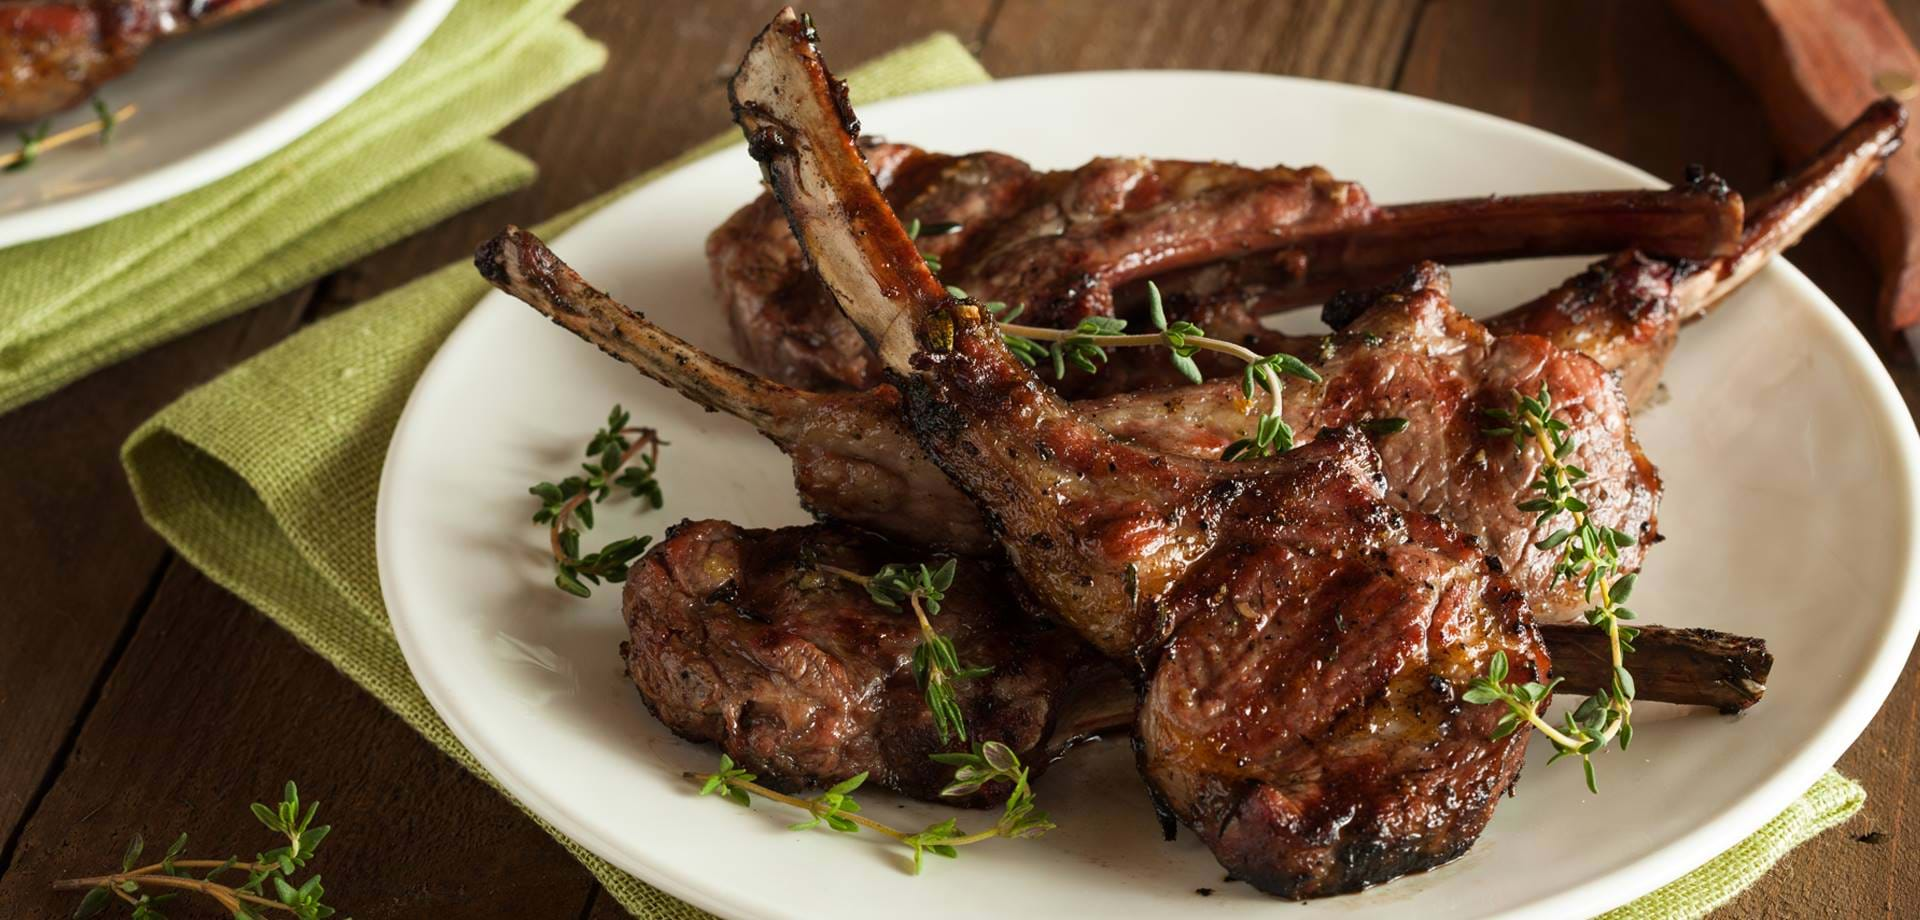 Estate lamb chops with onion and mint puree